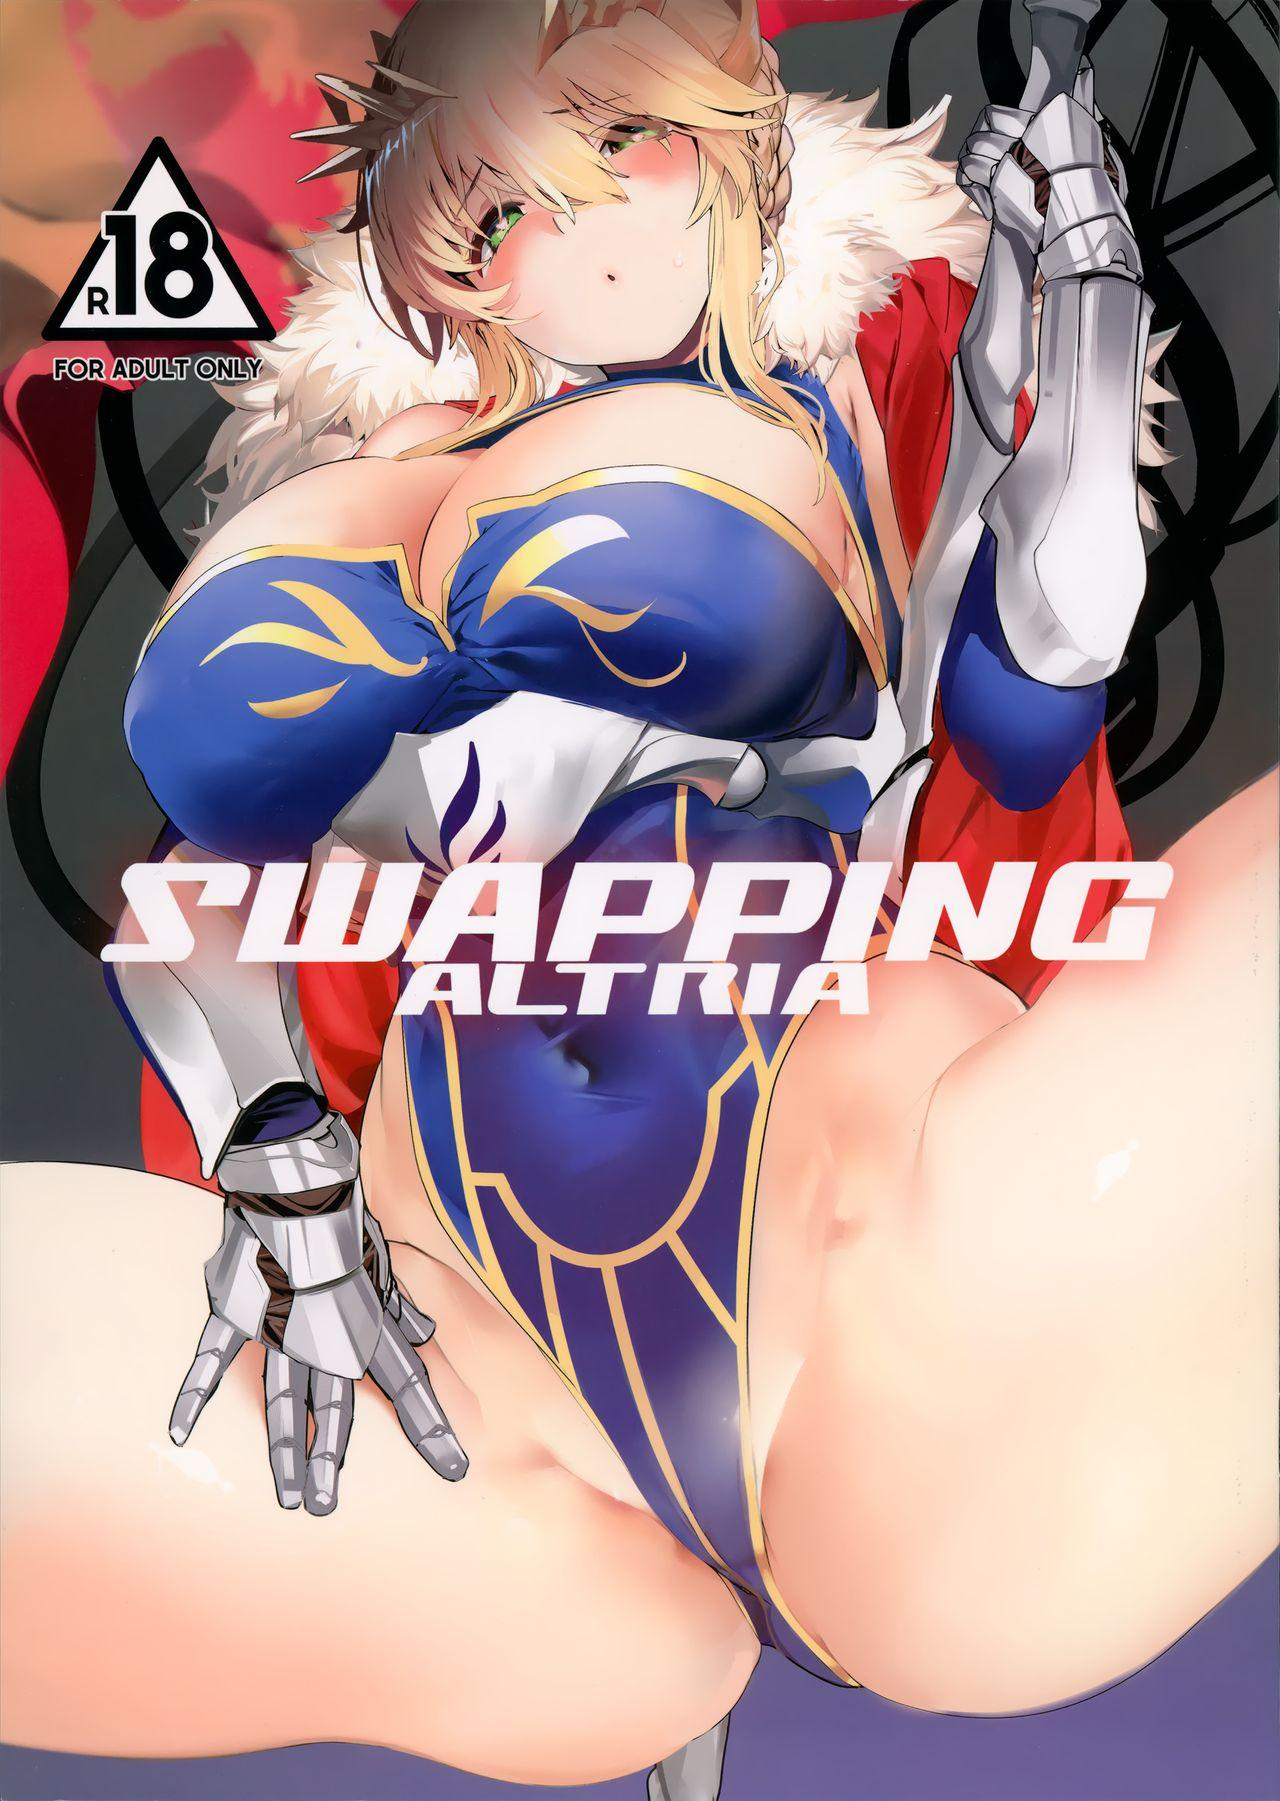 SWAPPING ALTRIA 1